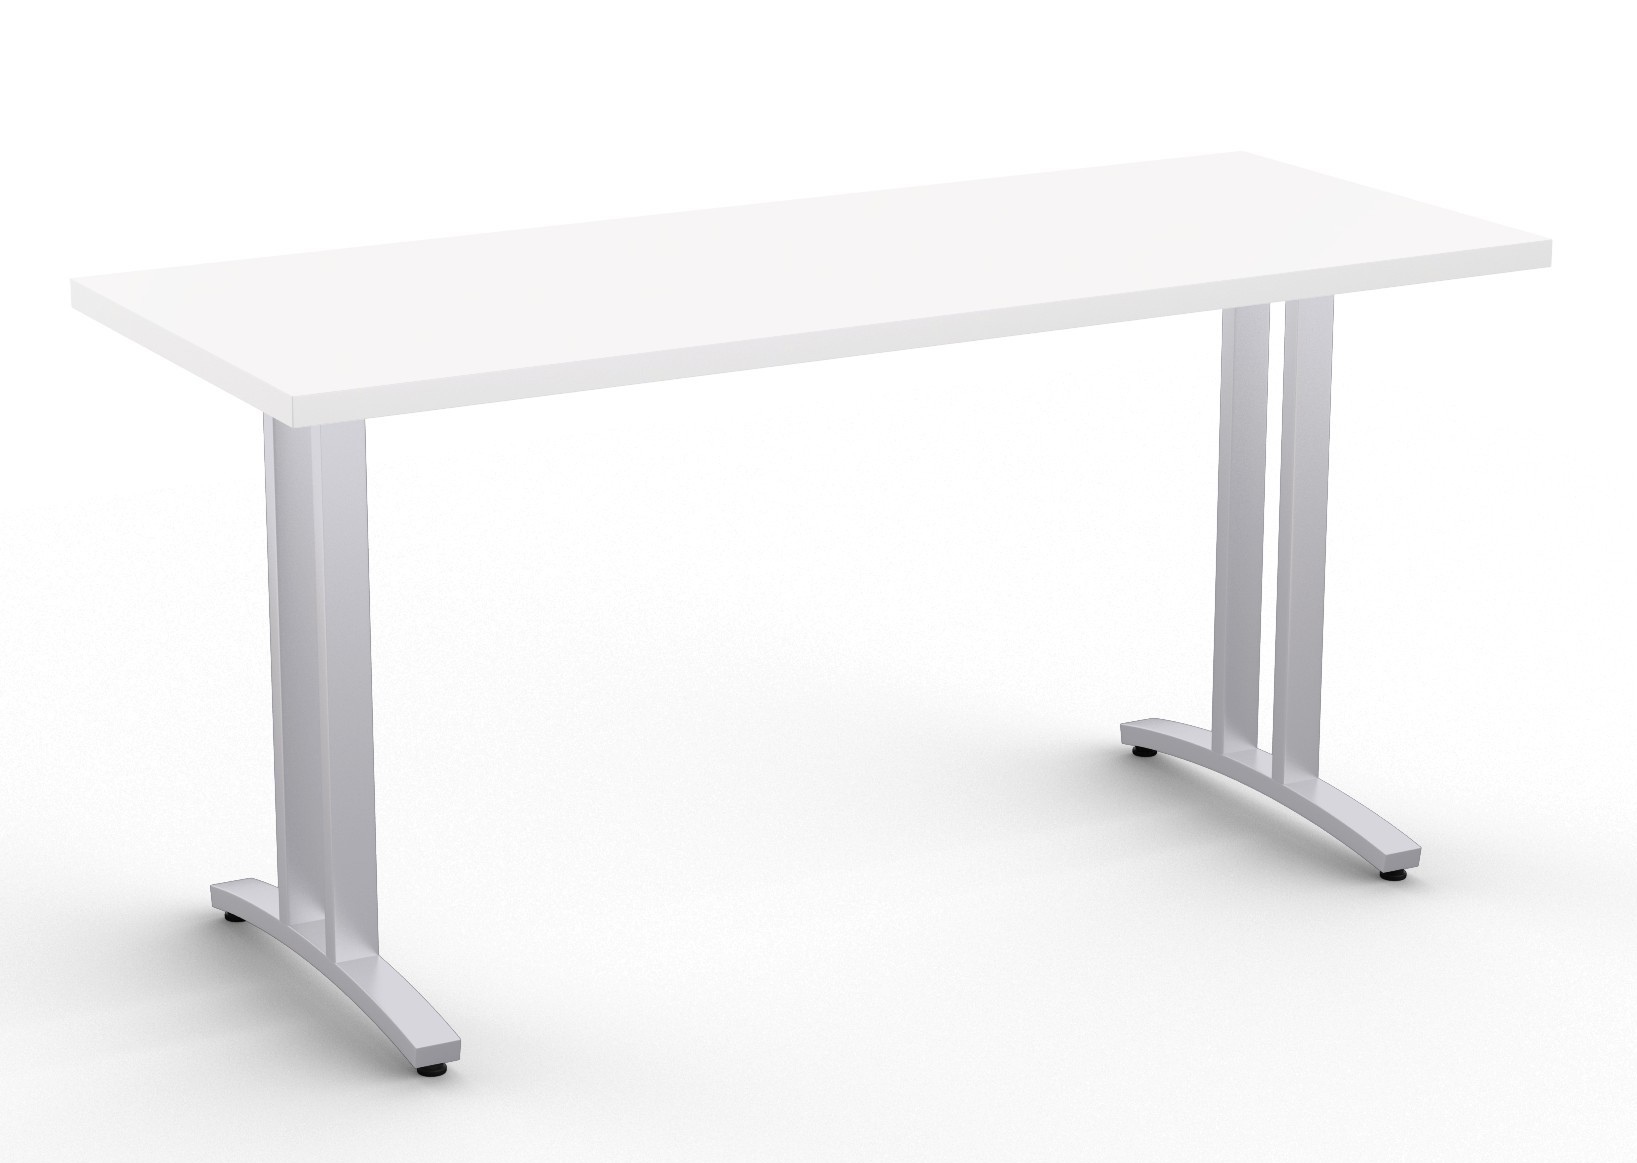 special-t structure 2tl work table in white